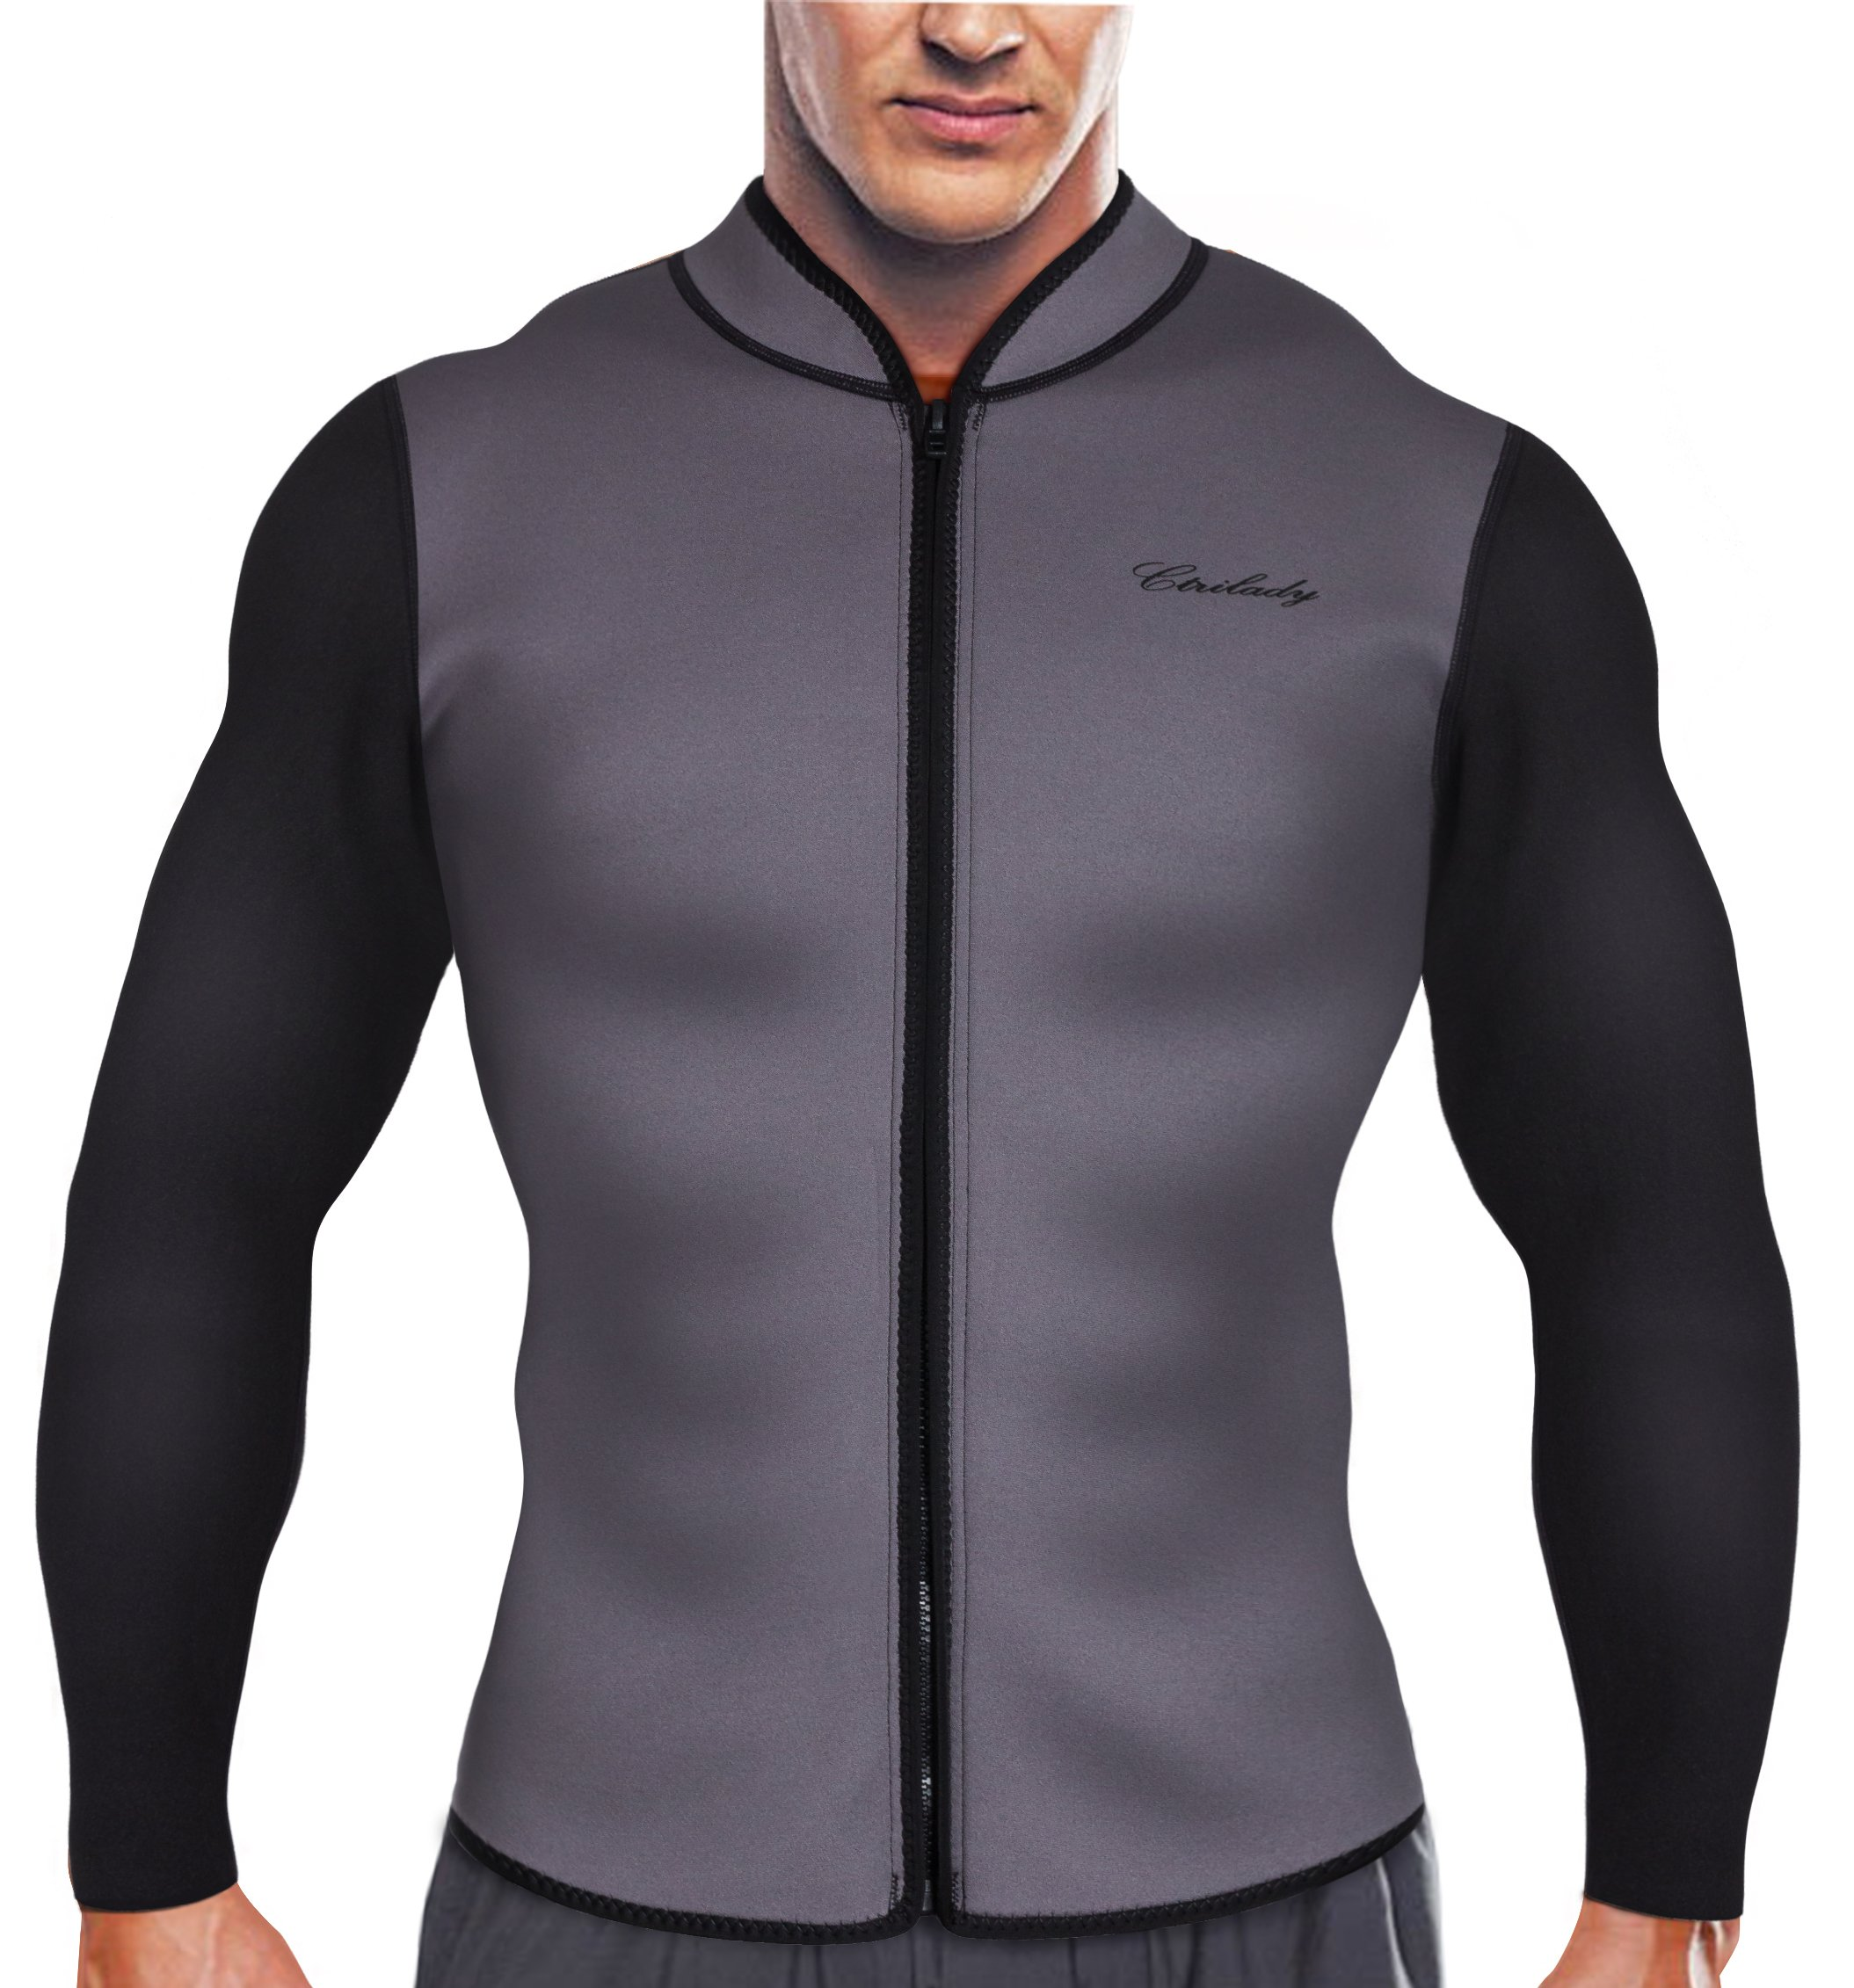 CtriLady Men s Best Neoprene Wetsuit Jacket Front Zipper Long Sleeves  Workout Tank Top for Swimming Snorkeling Surfing 2348f026b